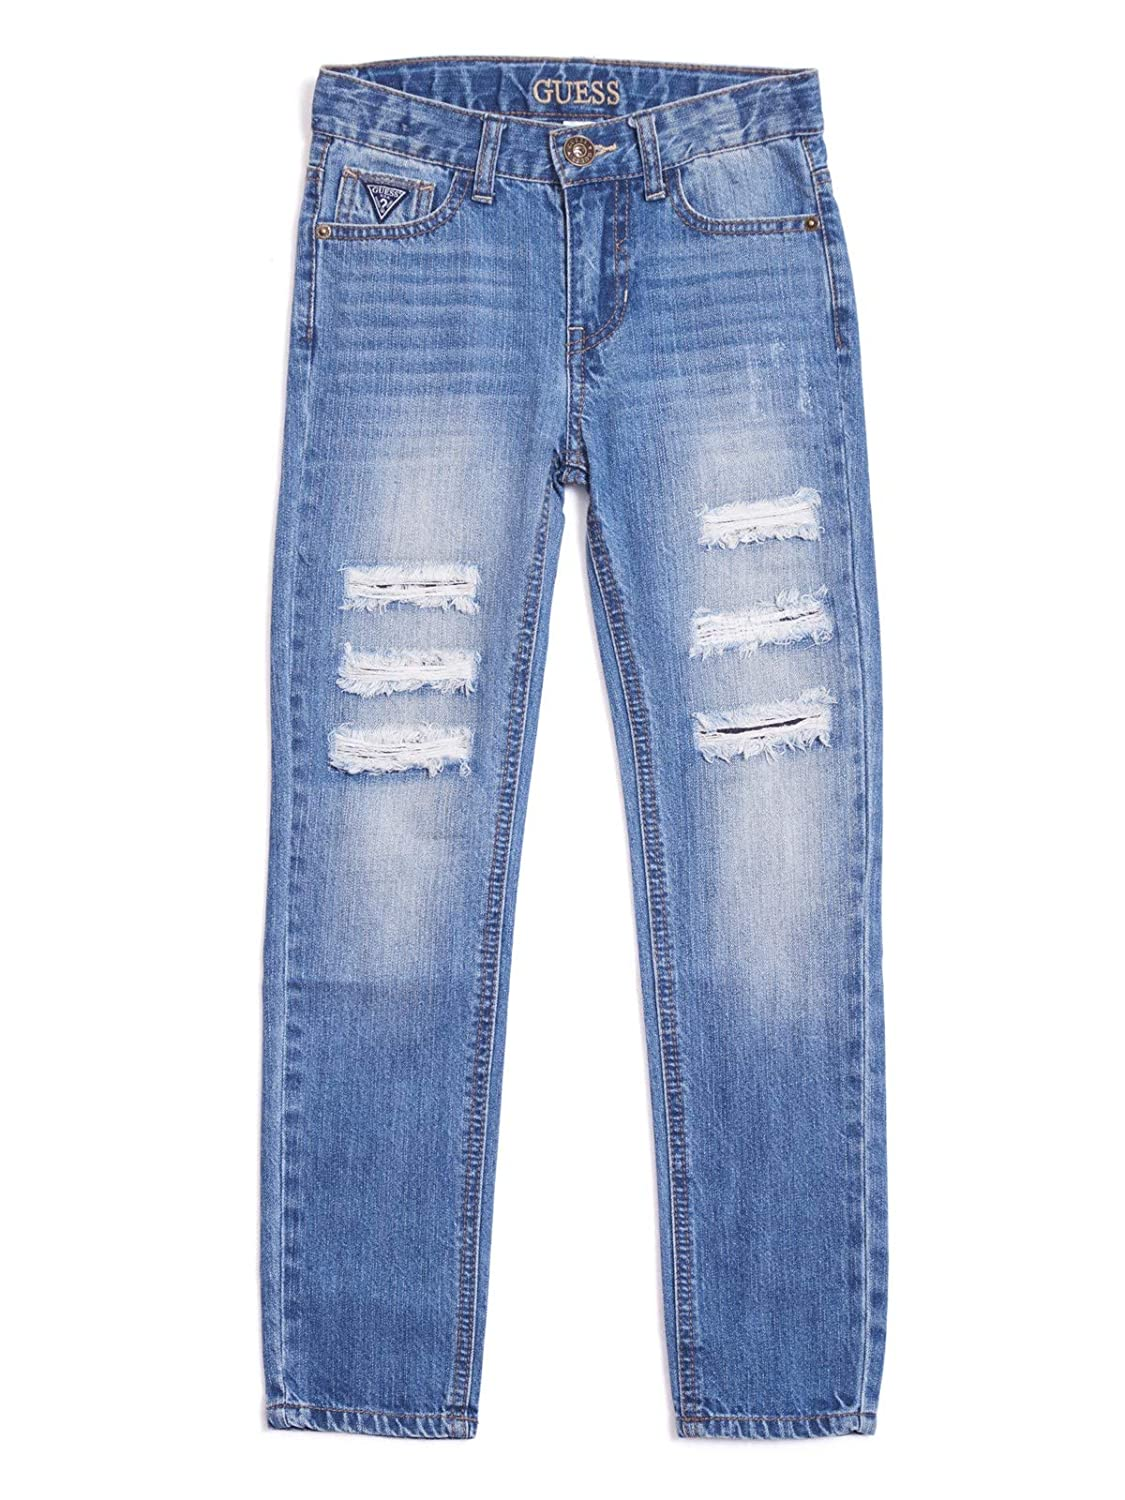 Guess Factory Lars Distressed Jeans (7-18) GuessFactory